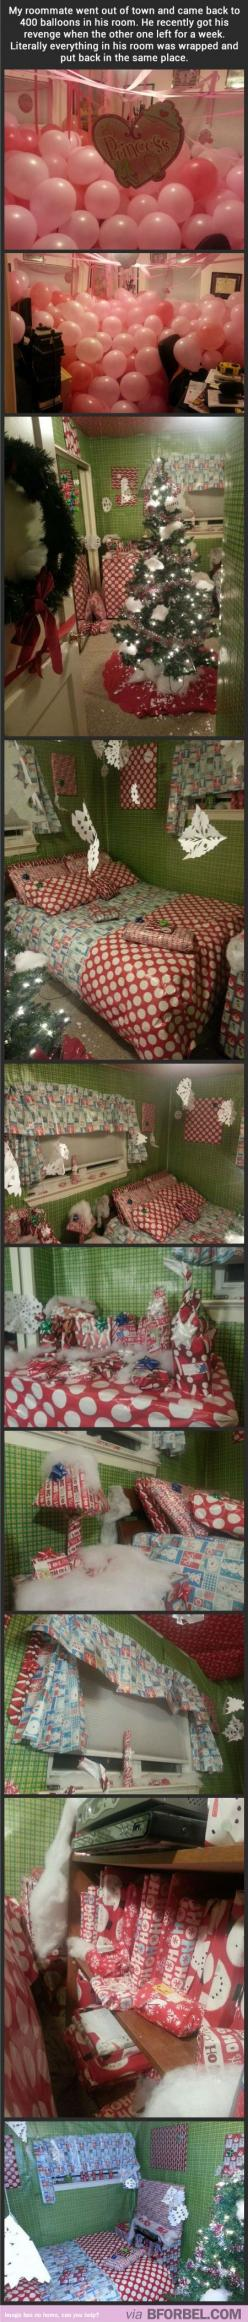 The Amount Of Commitment Here Just Astounds Me… *Slow Clap*: Giggle, Wrapping Papers, Roommate Pranks, Sweet Revenge, Roomate Pranks, Funny Pranks, College Pranks, Christmas Wrapping